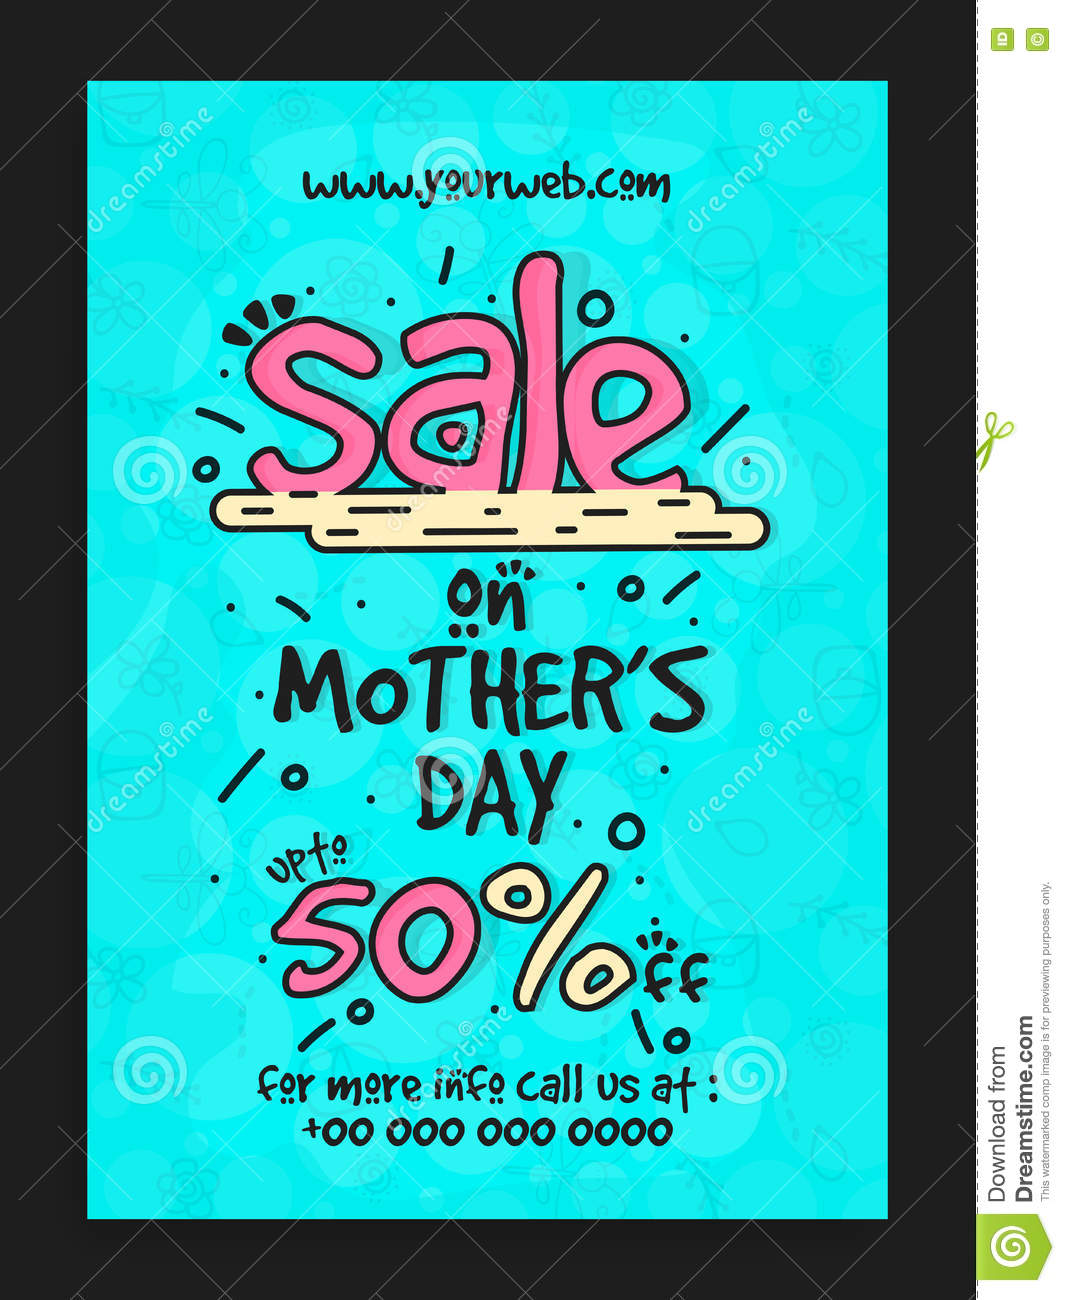 Mothers Day Storewide Sale Template: Sale Template, Banner Or Flyer For Mother's Day. Stock